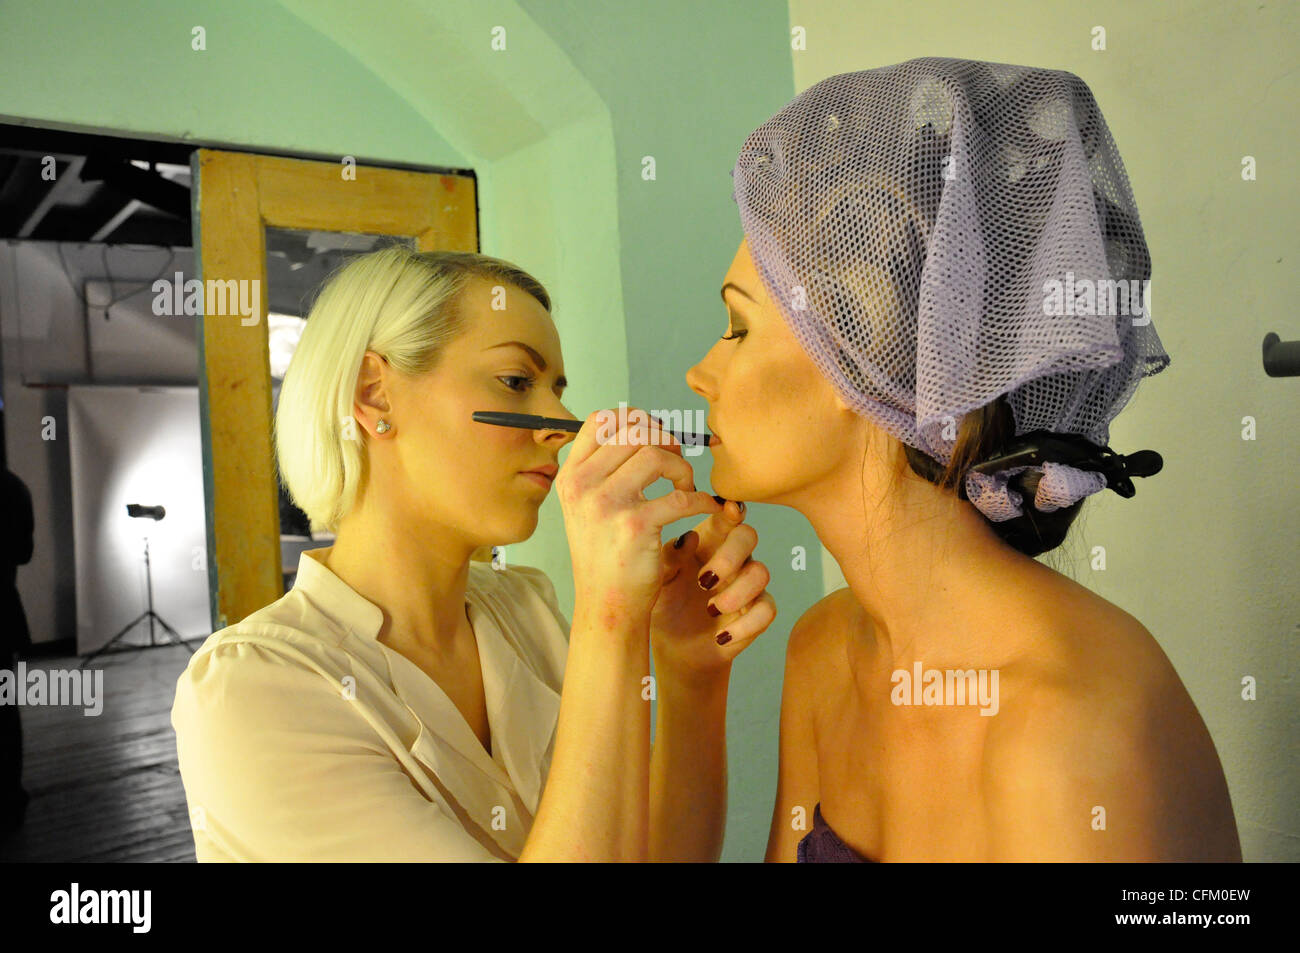 Hair & Make up models & stylists - Stock Image